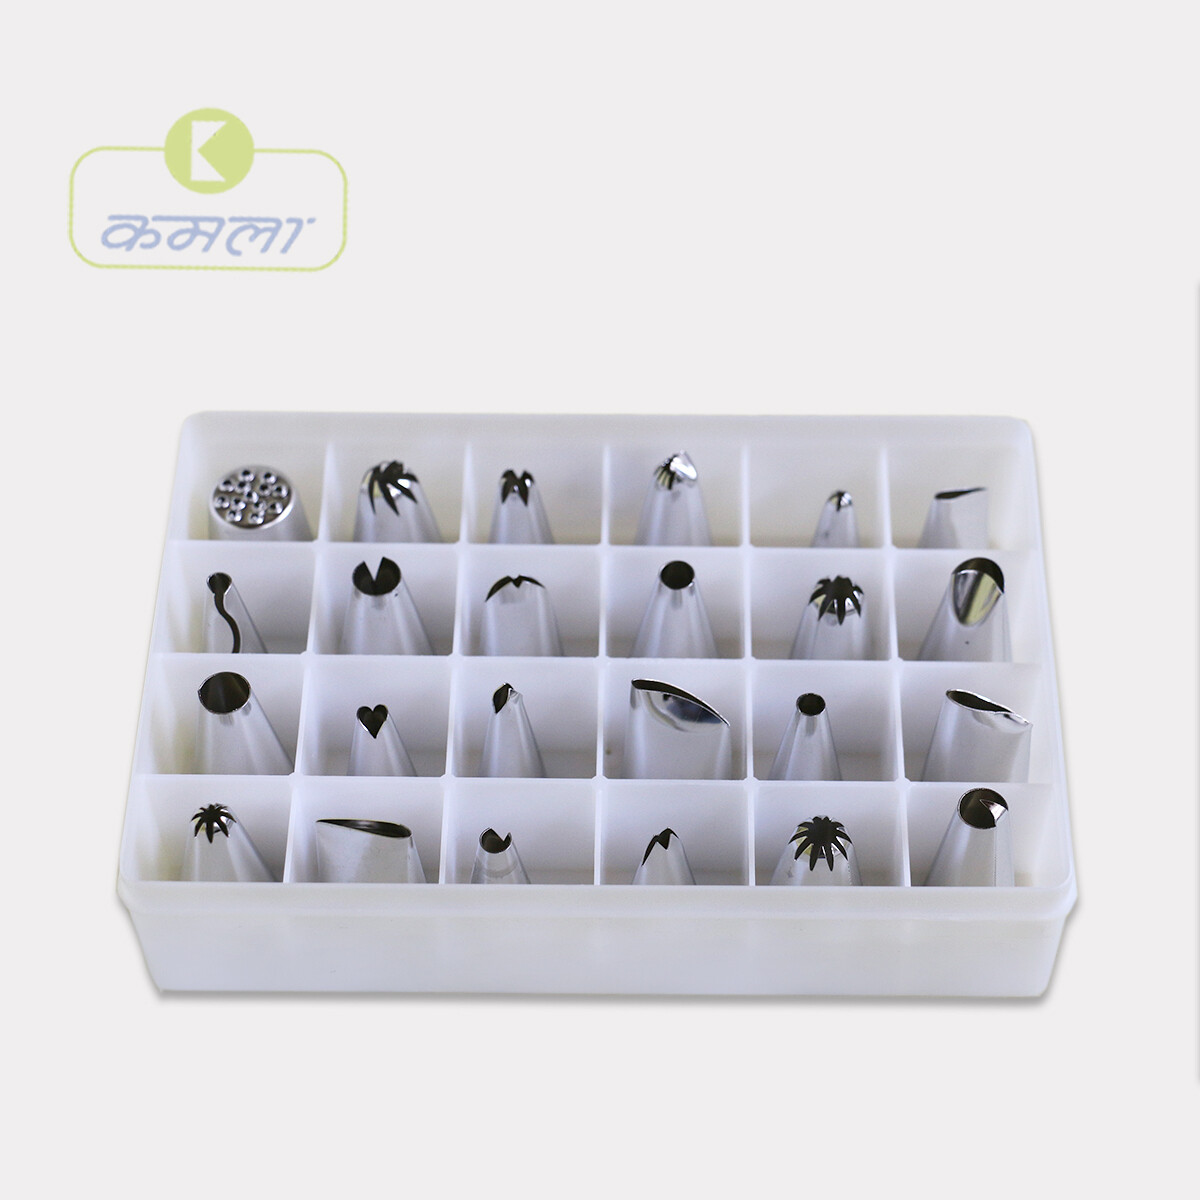 Icing Nozzle Set 24 in 1 (Box)